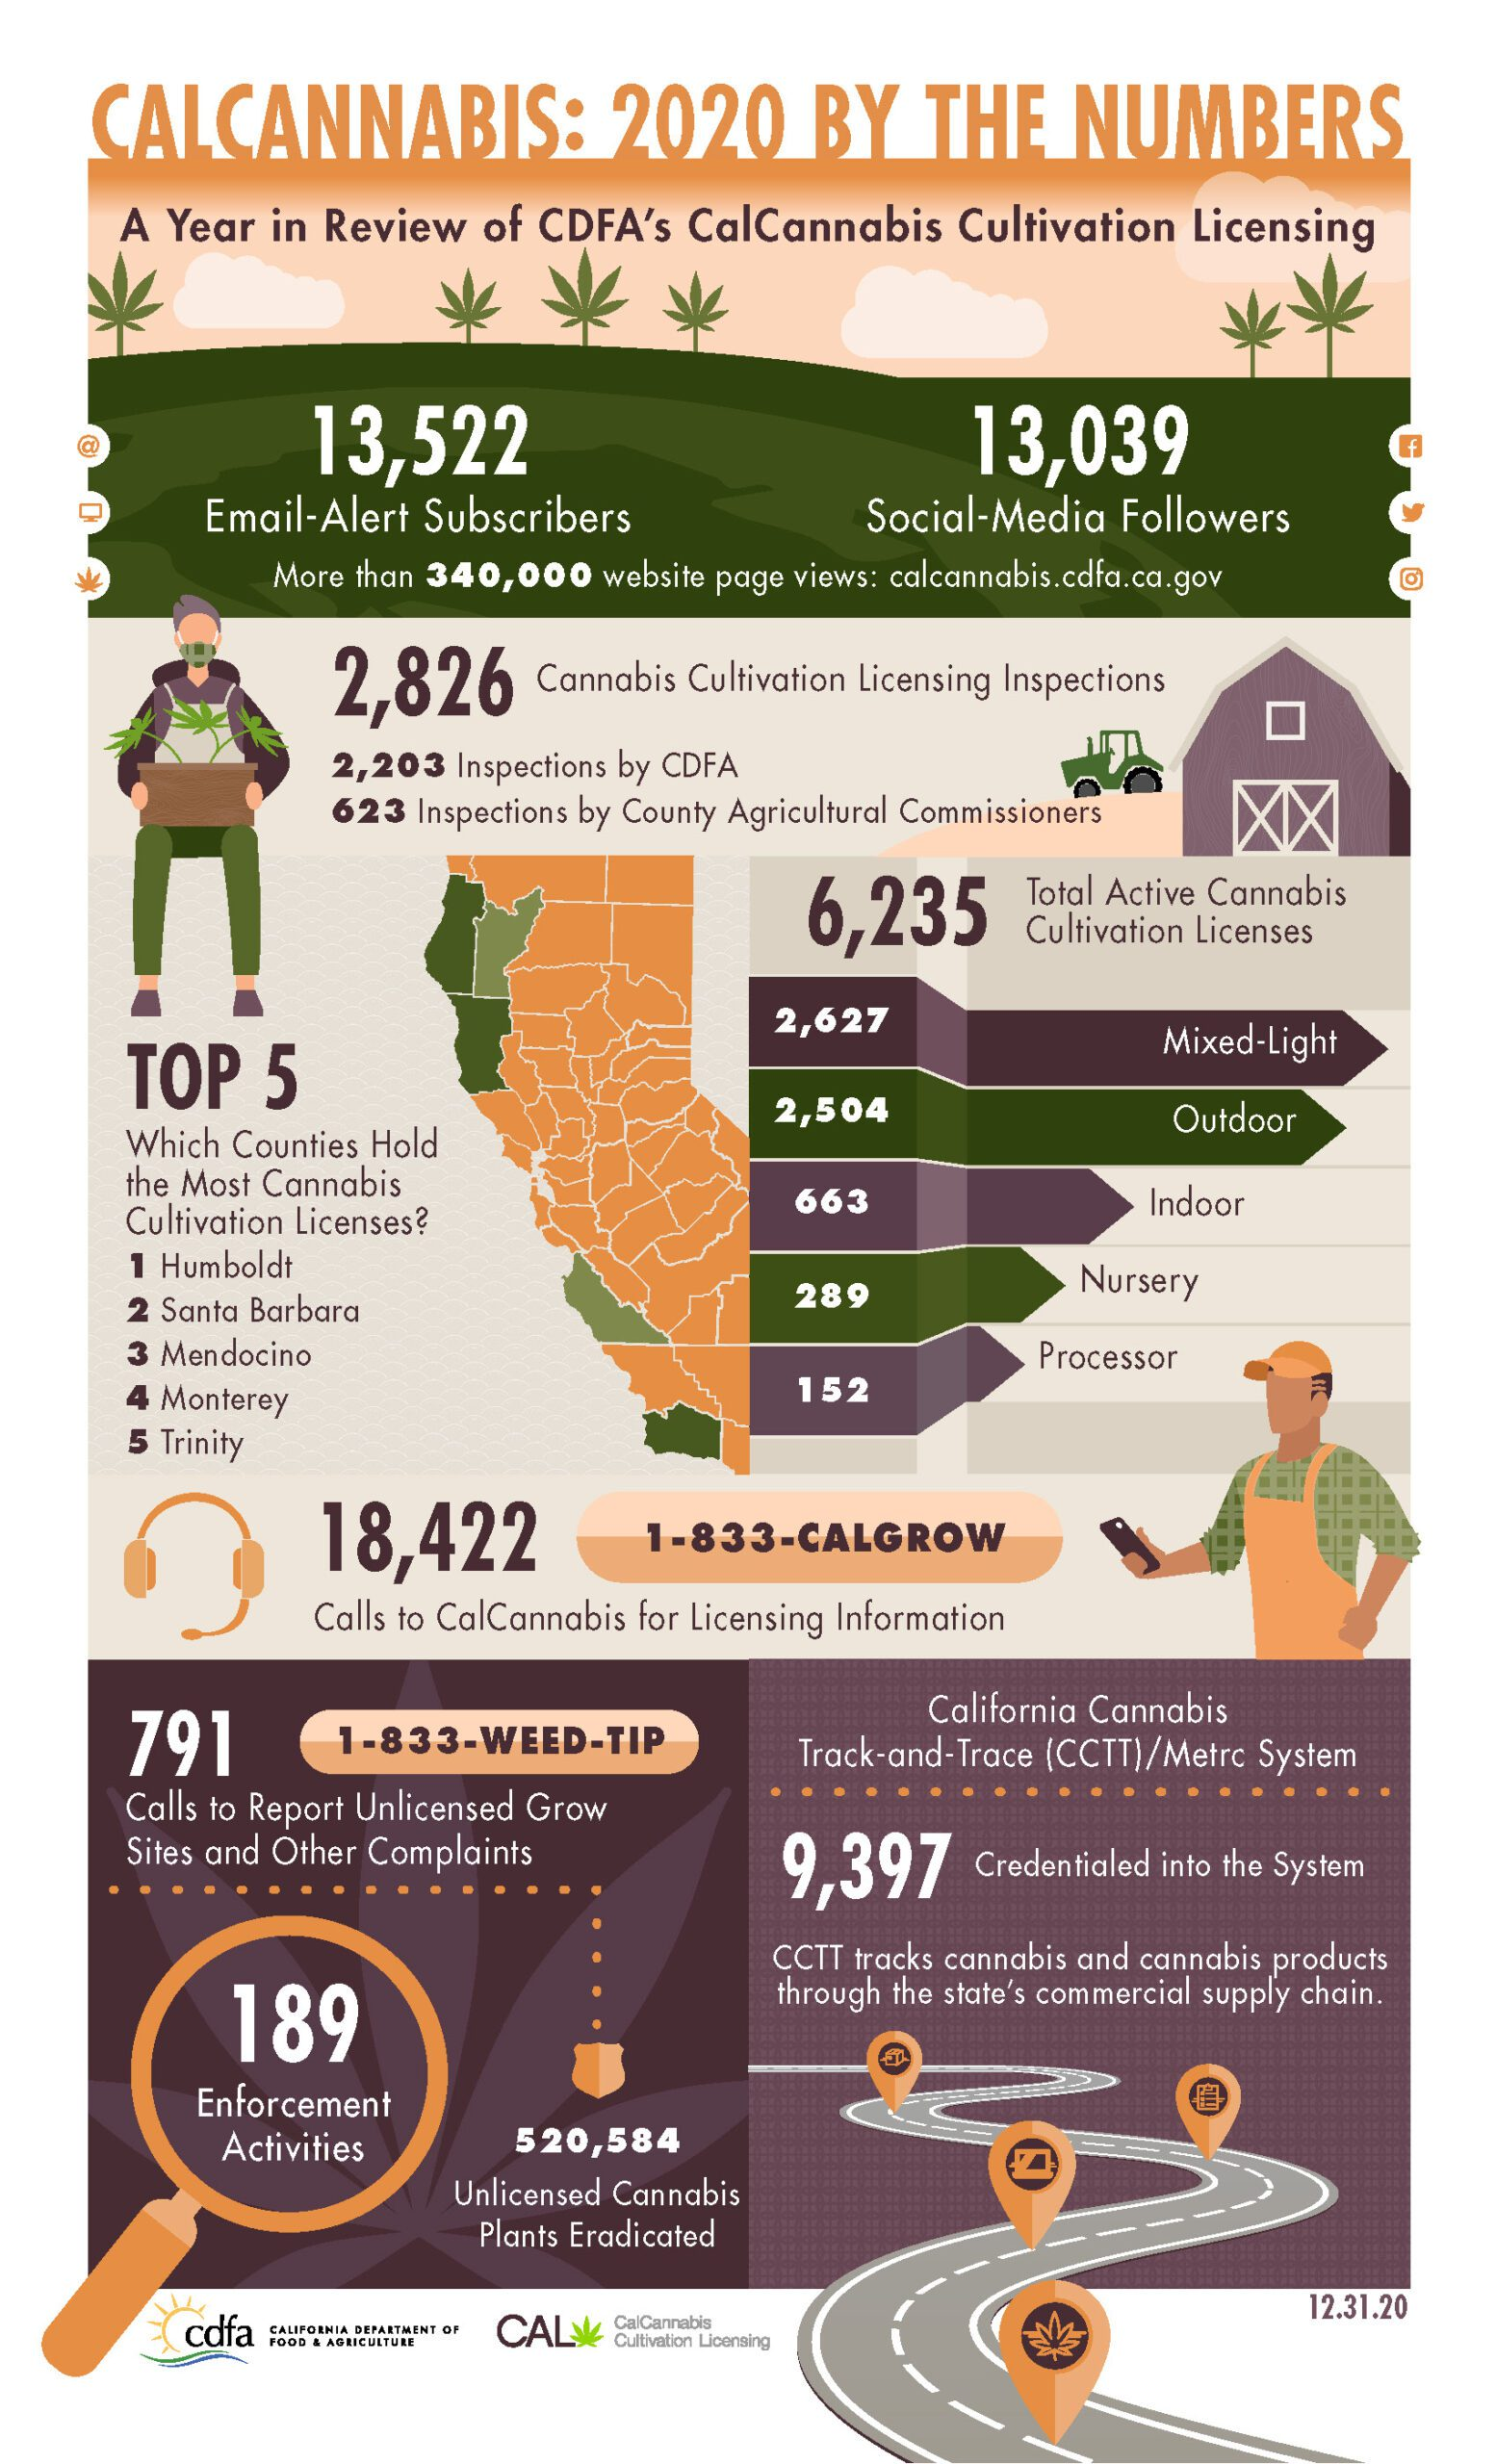 infographic of calcannabis 2020 by the numbers